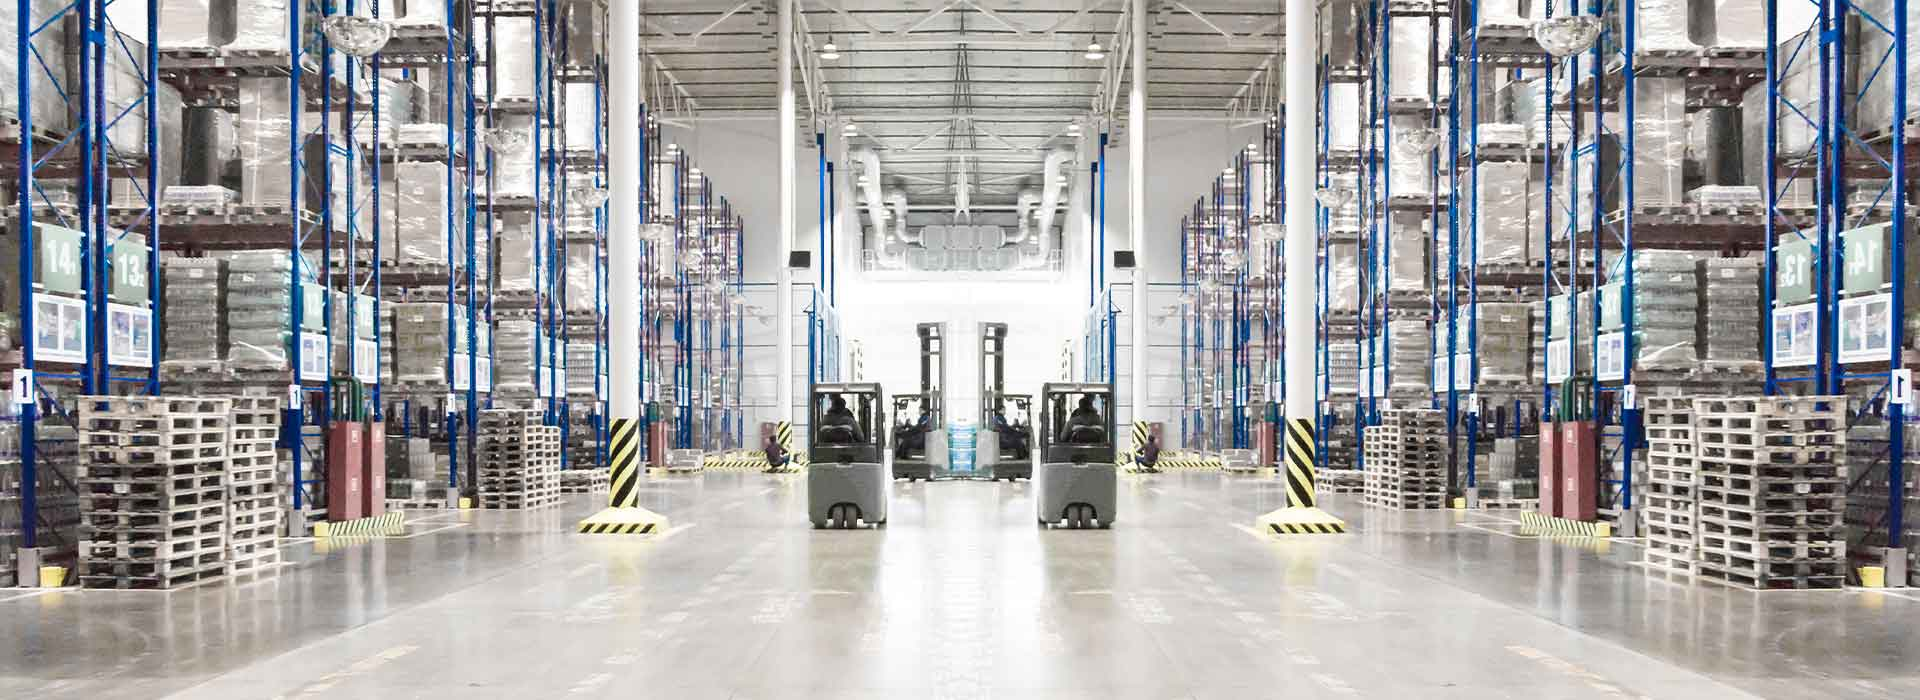 Considering Outsourcing Your Logistics?